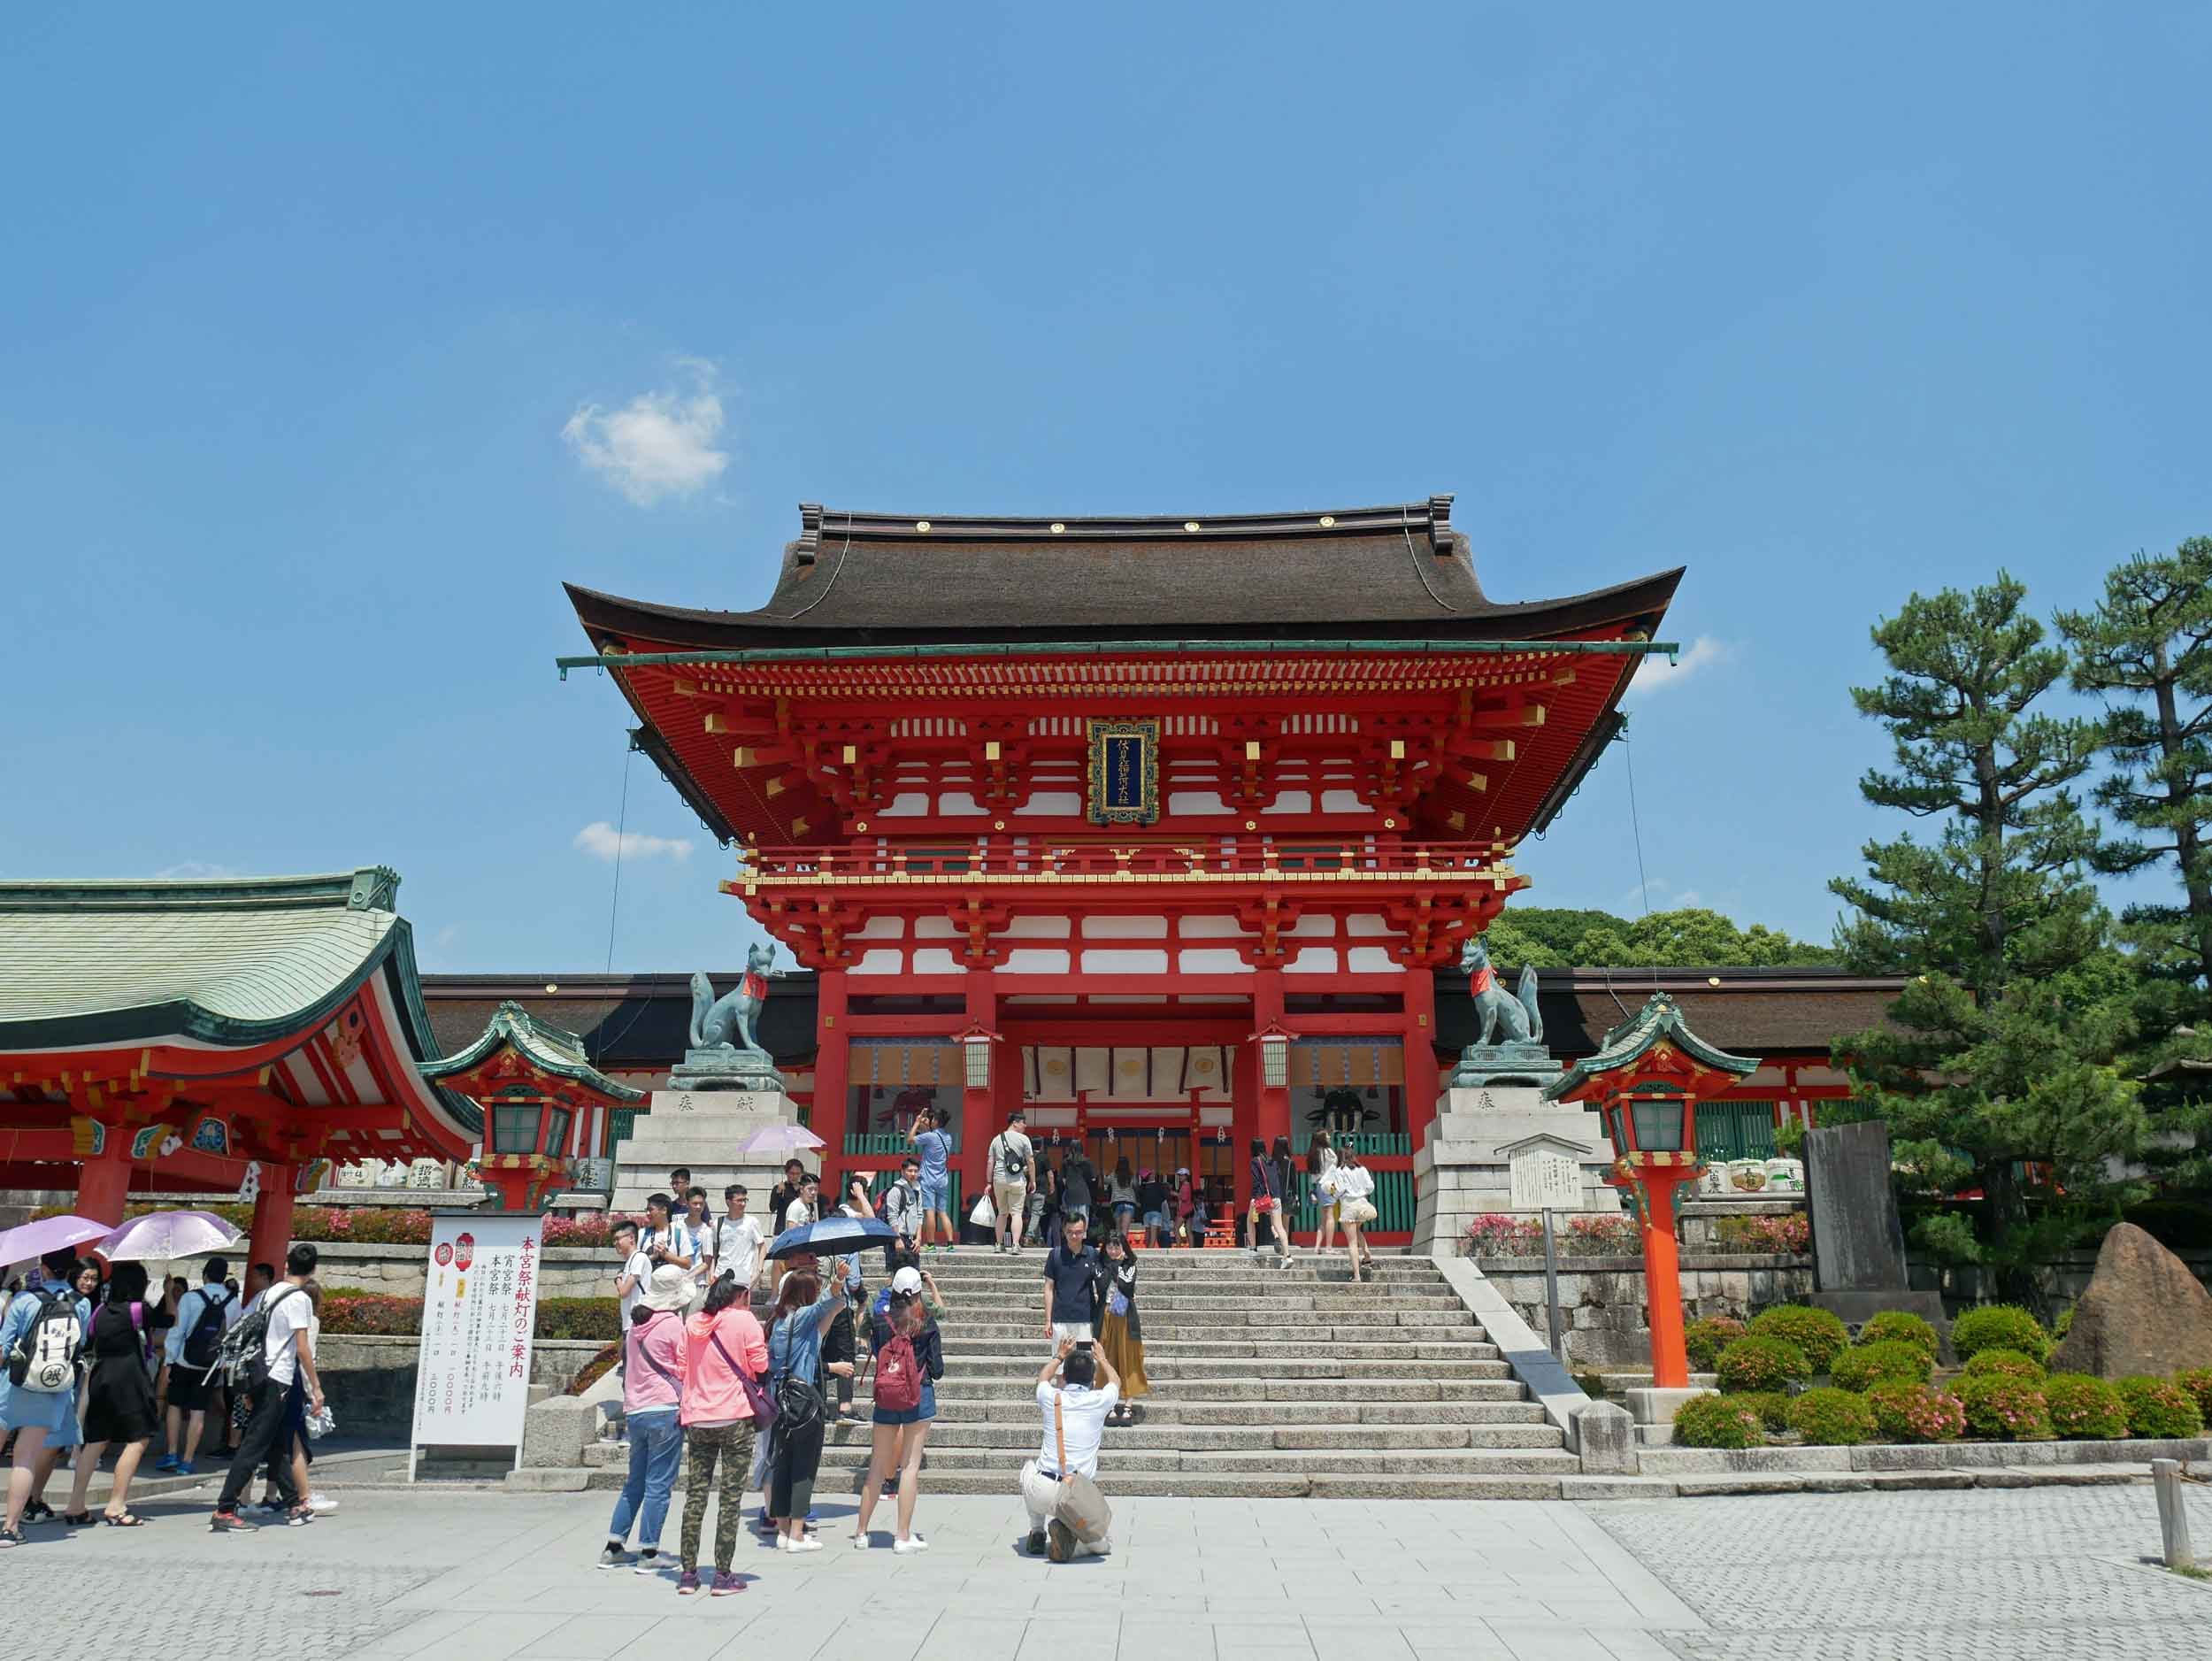 Arriving in Kyoto, we made our way to Fushimi Inari-taisha, a shrine dedicated to the fox.